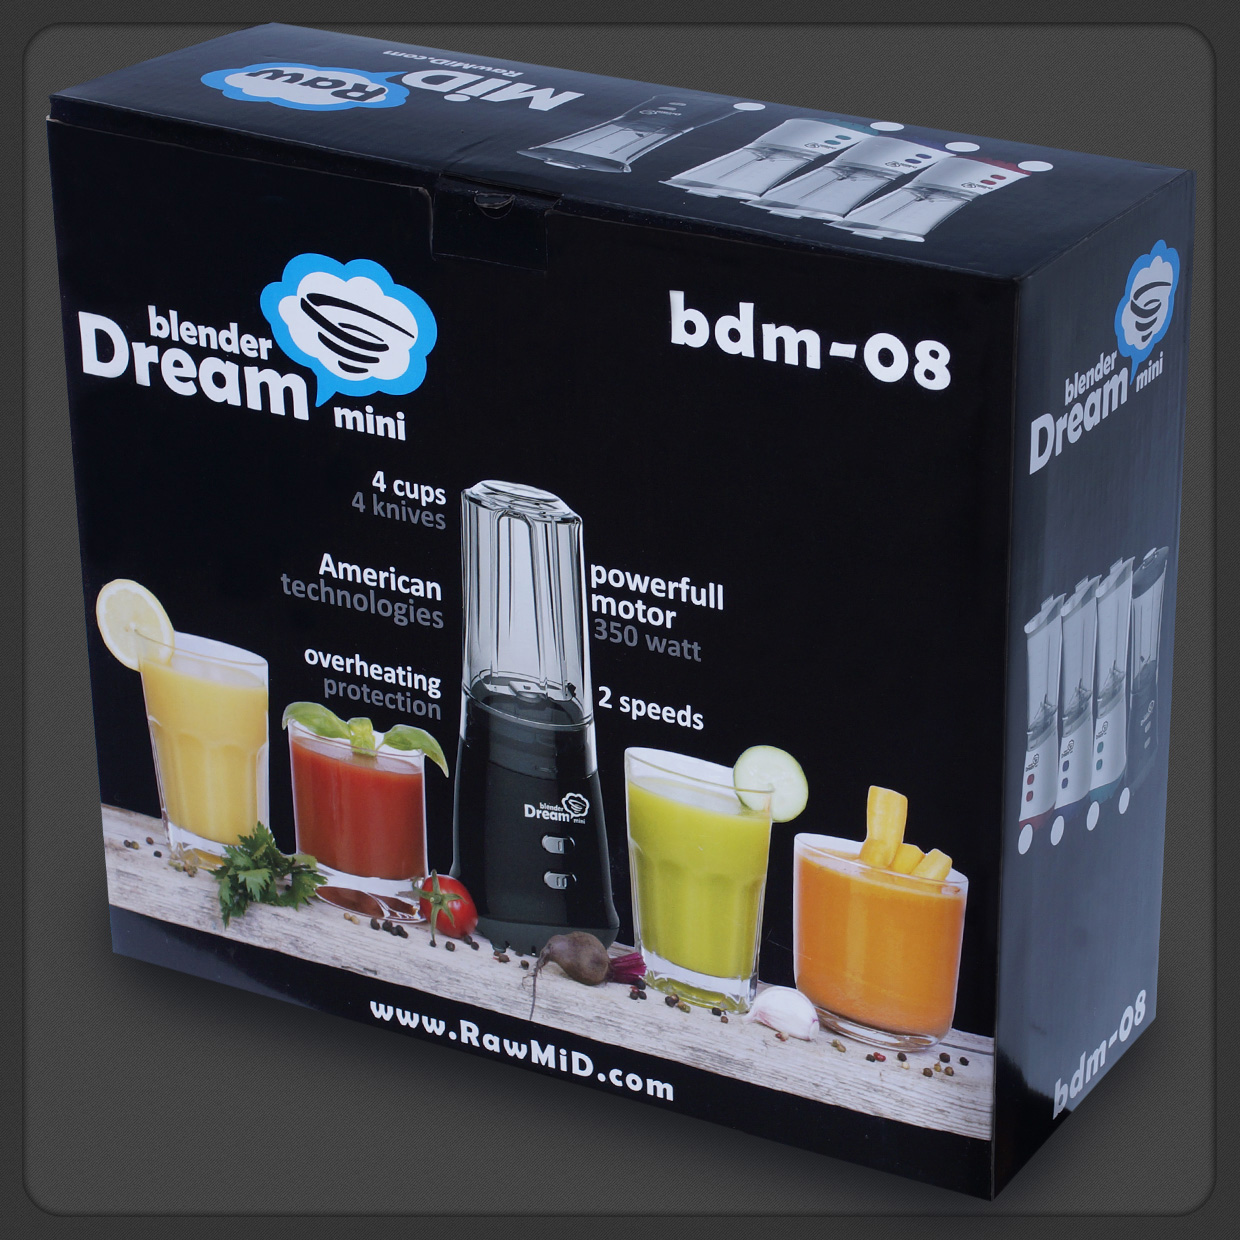 Dream mini BDM-08